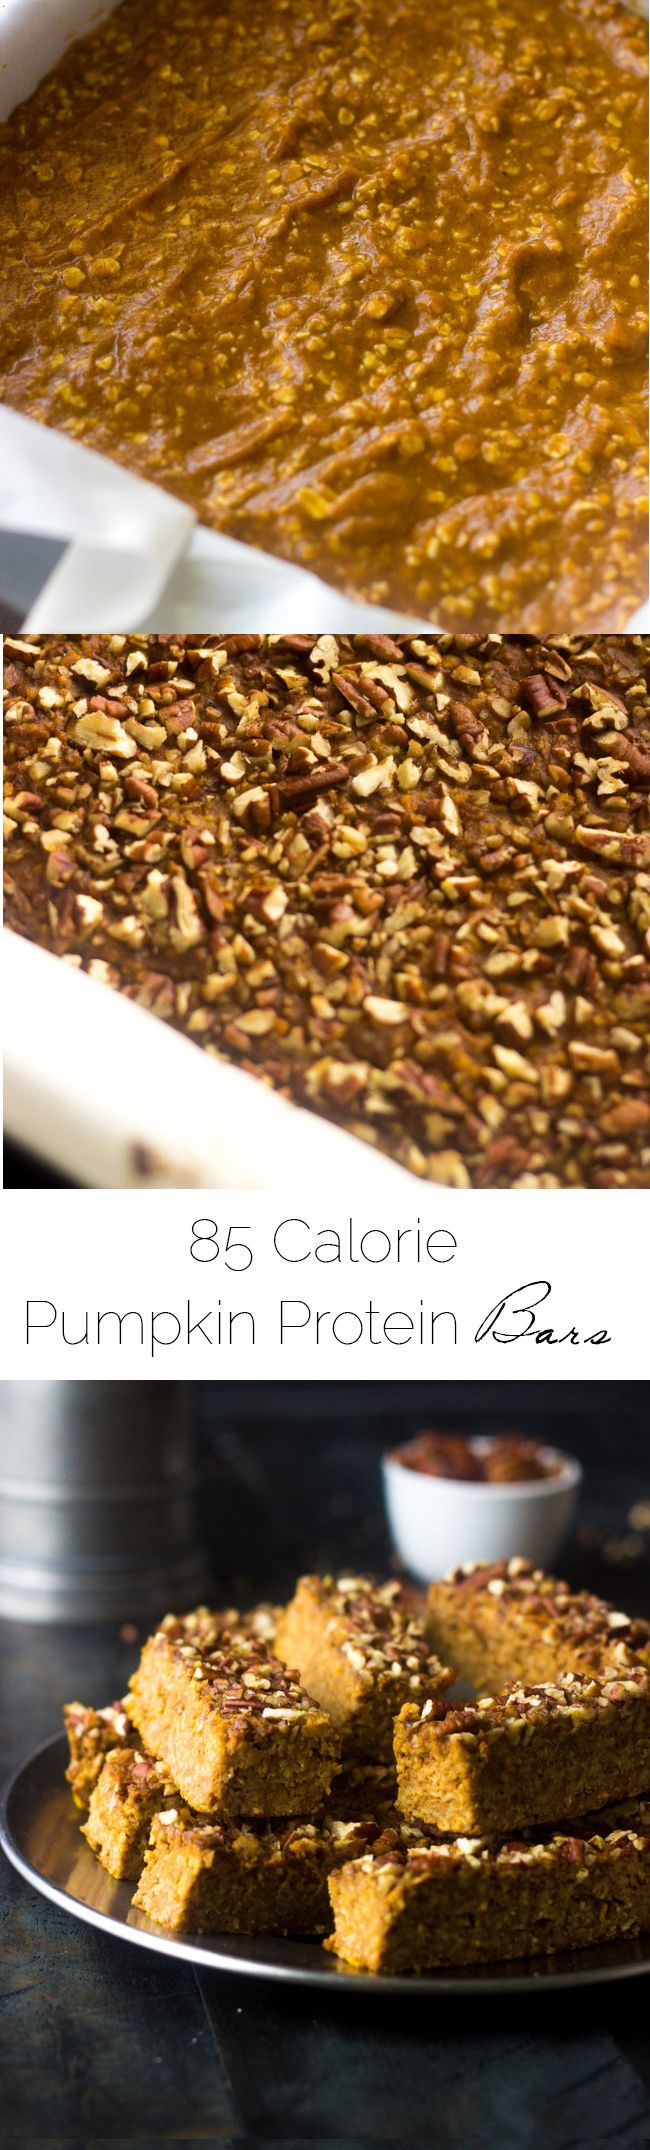 Pumpkin Protein Bars - They taste JUST like pumpkin pie but are easy, gluten free and only 85 calories. Great for on the go breakfasts or snacks! | Foodfaithfitness.com | @FoodFaithFit